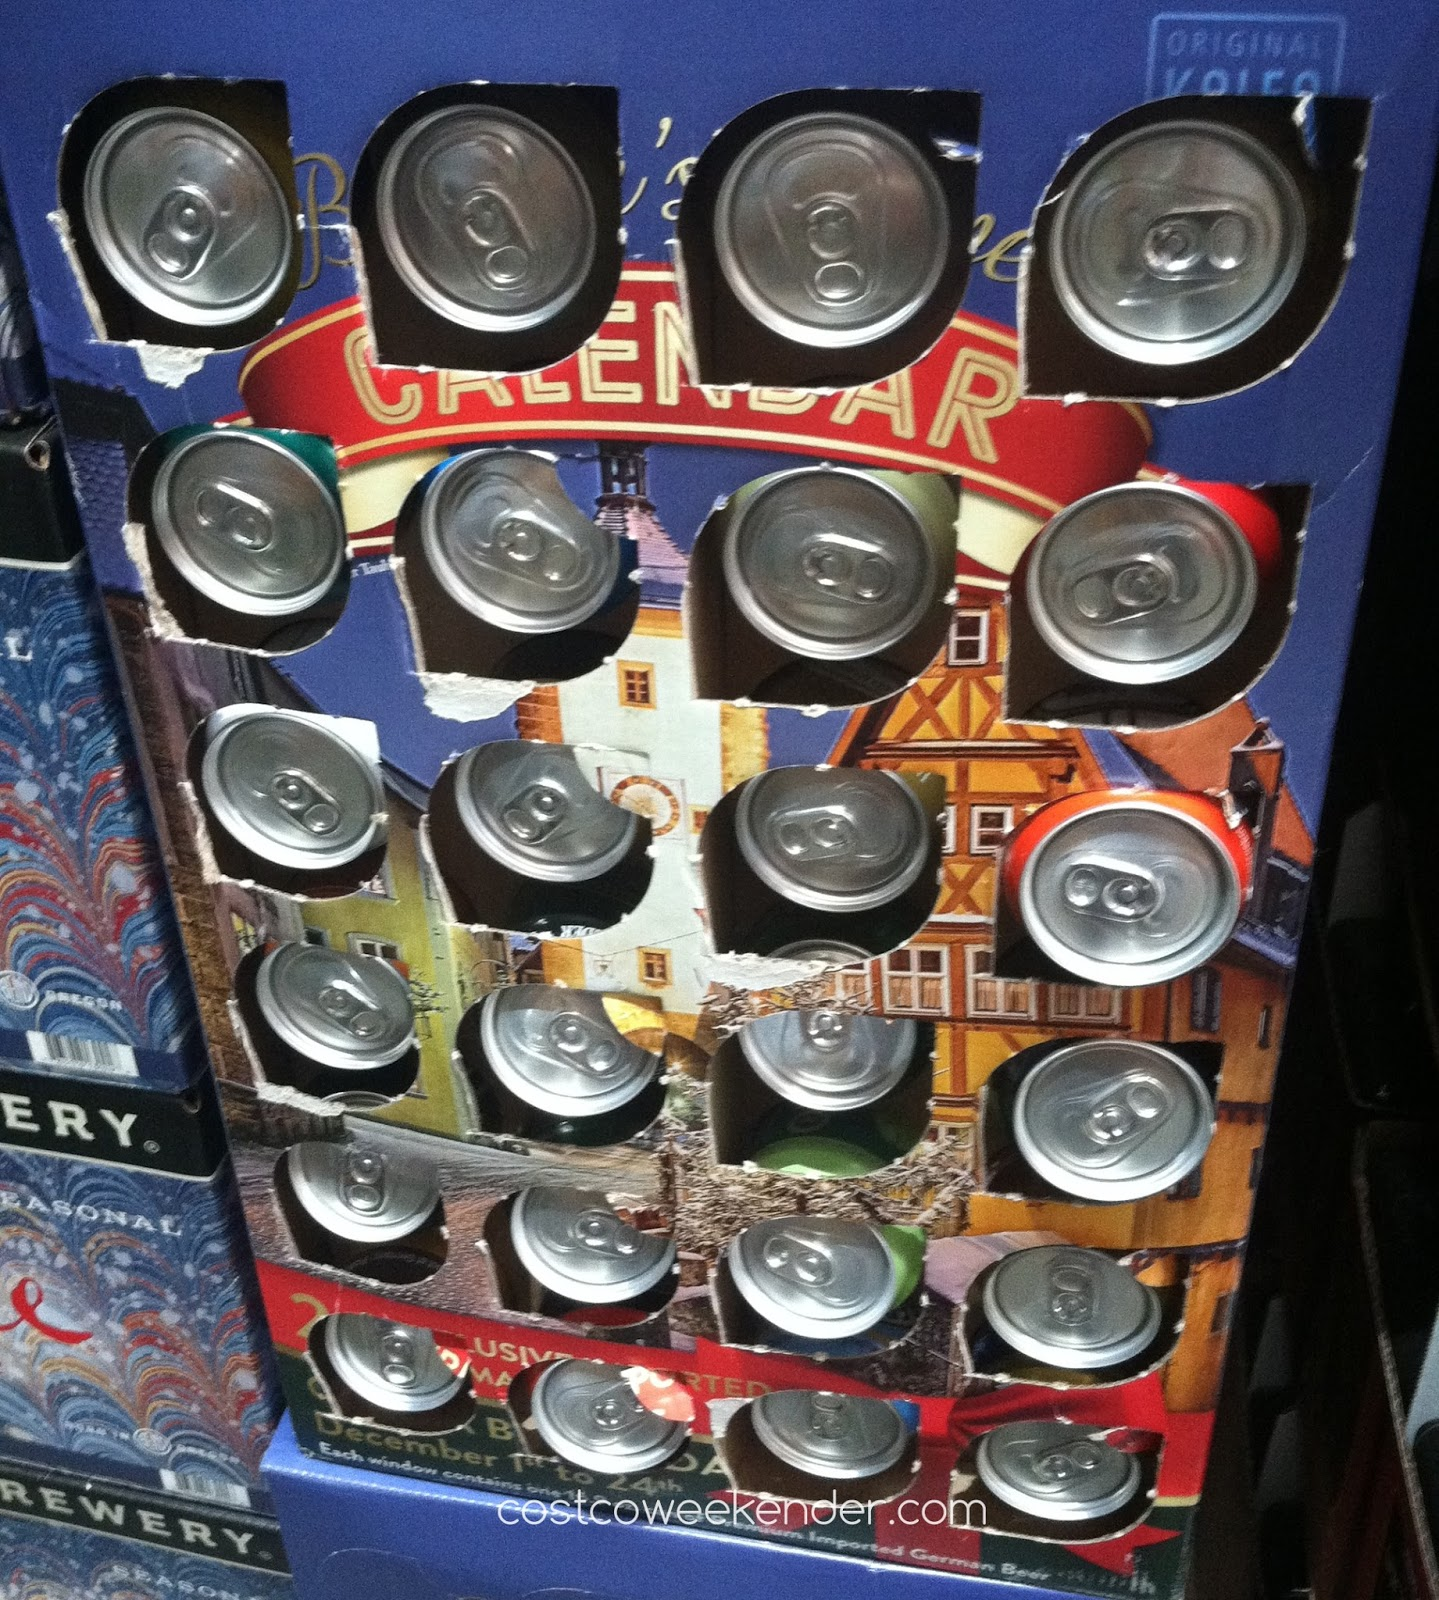 Costco 612833 - Brewer's Advent Calendar gives you a beer a day during the holidays